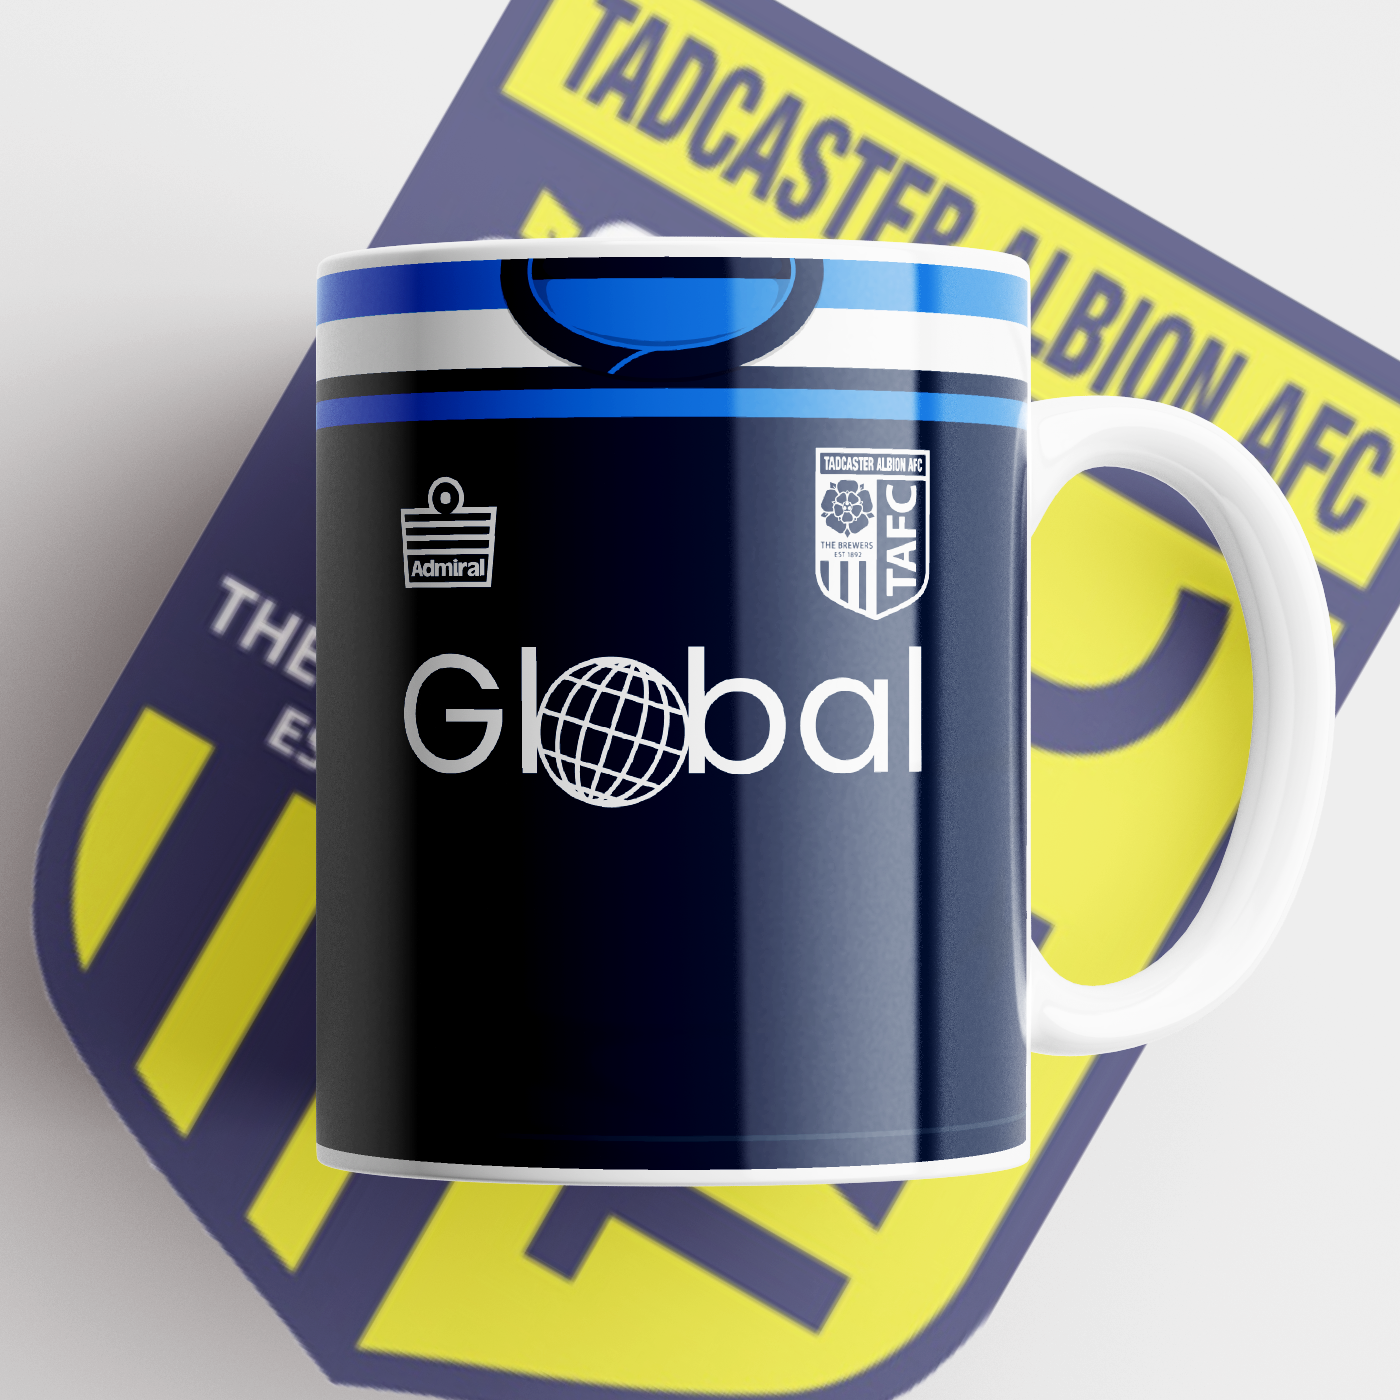 TADCASTER ALBION OFFICIAL CERAMIC MUG AWAY